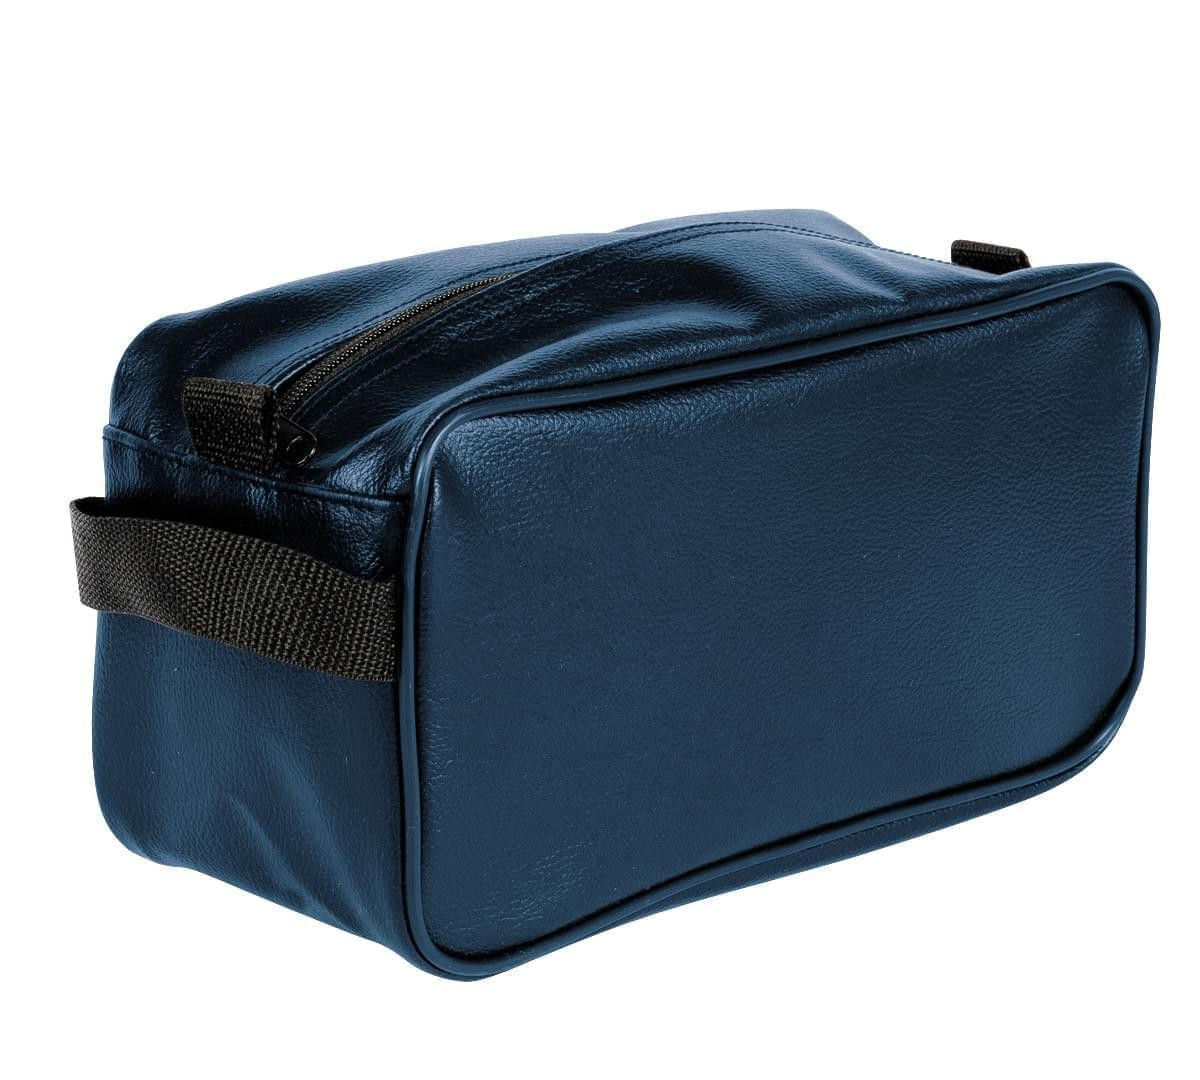 USA Made Cosmetic & Toiletry Cases, Navy-Black, 3000996-AWR